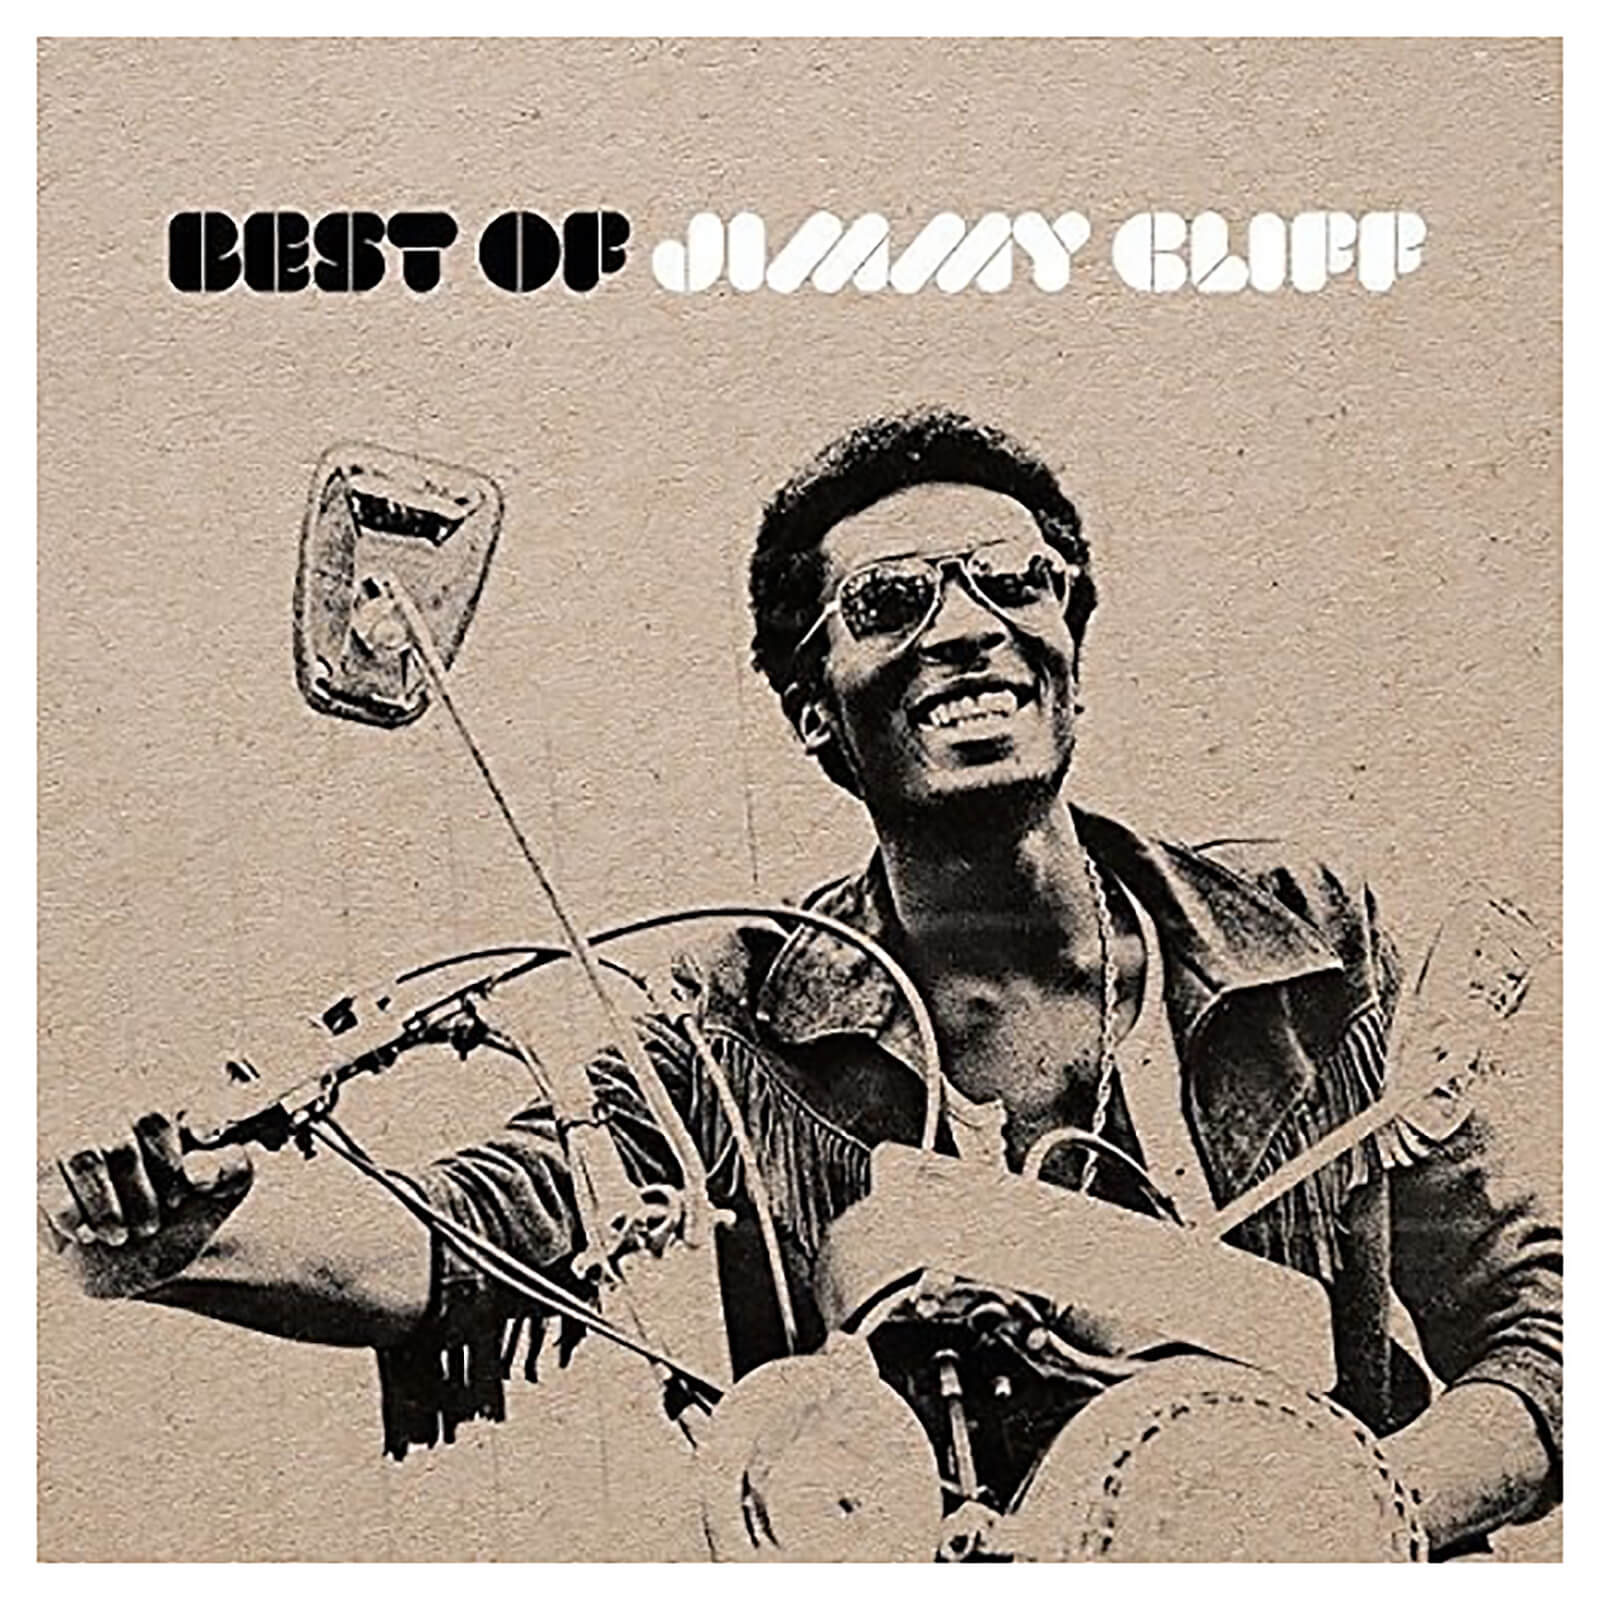 Jimmy Cliff - Best Of Jimmy Cliff - Vinyl